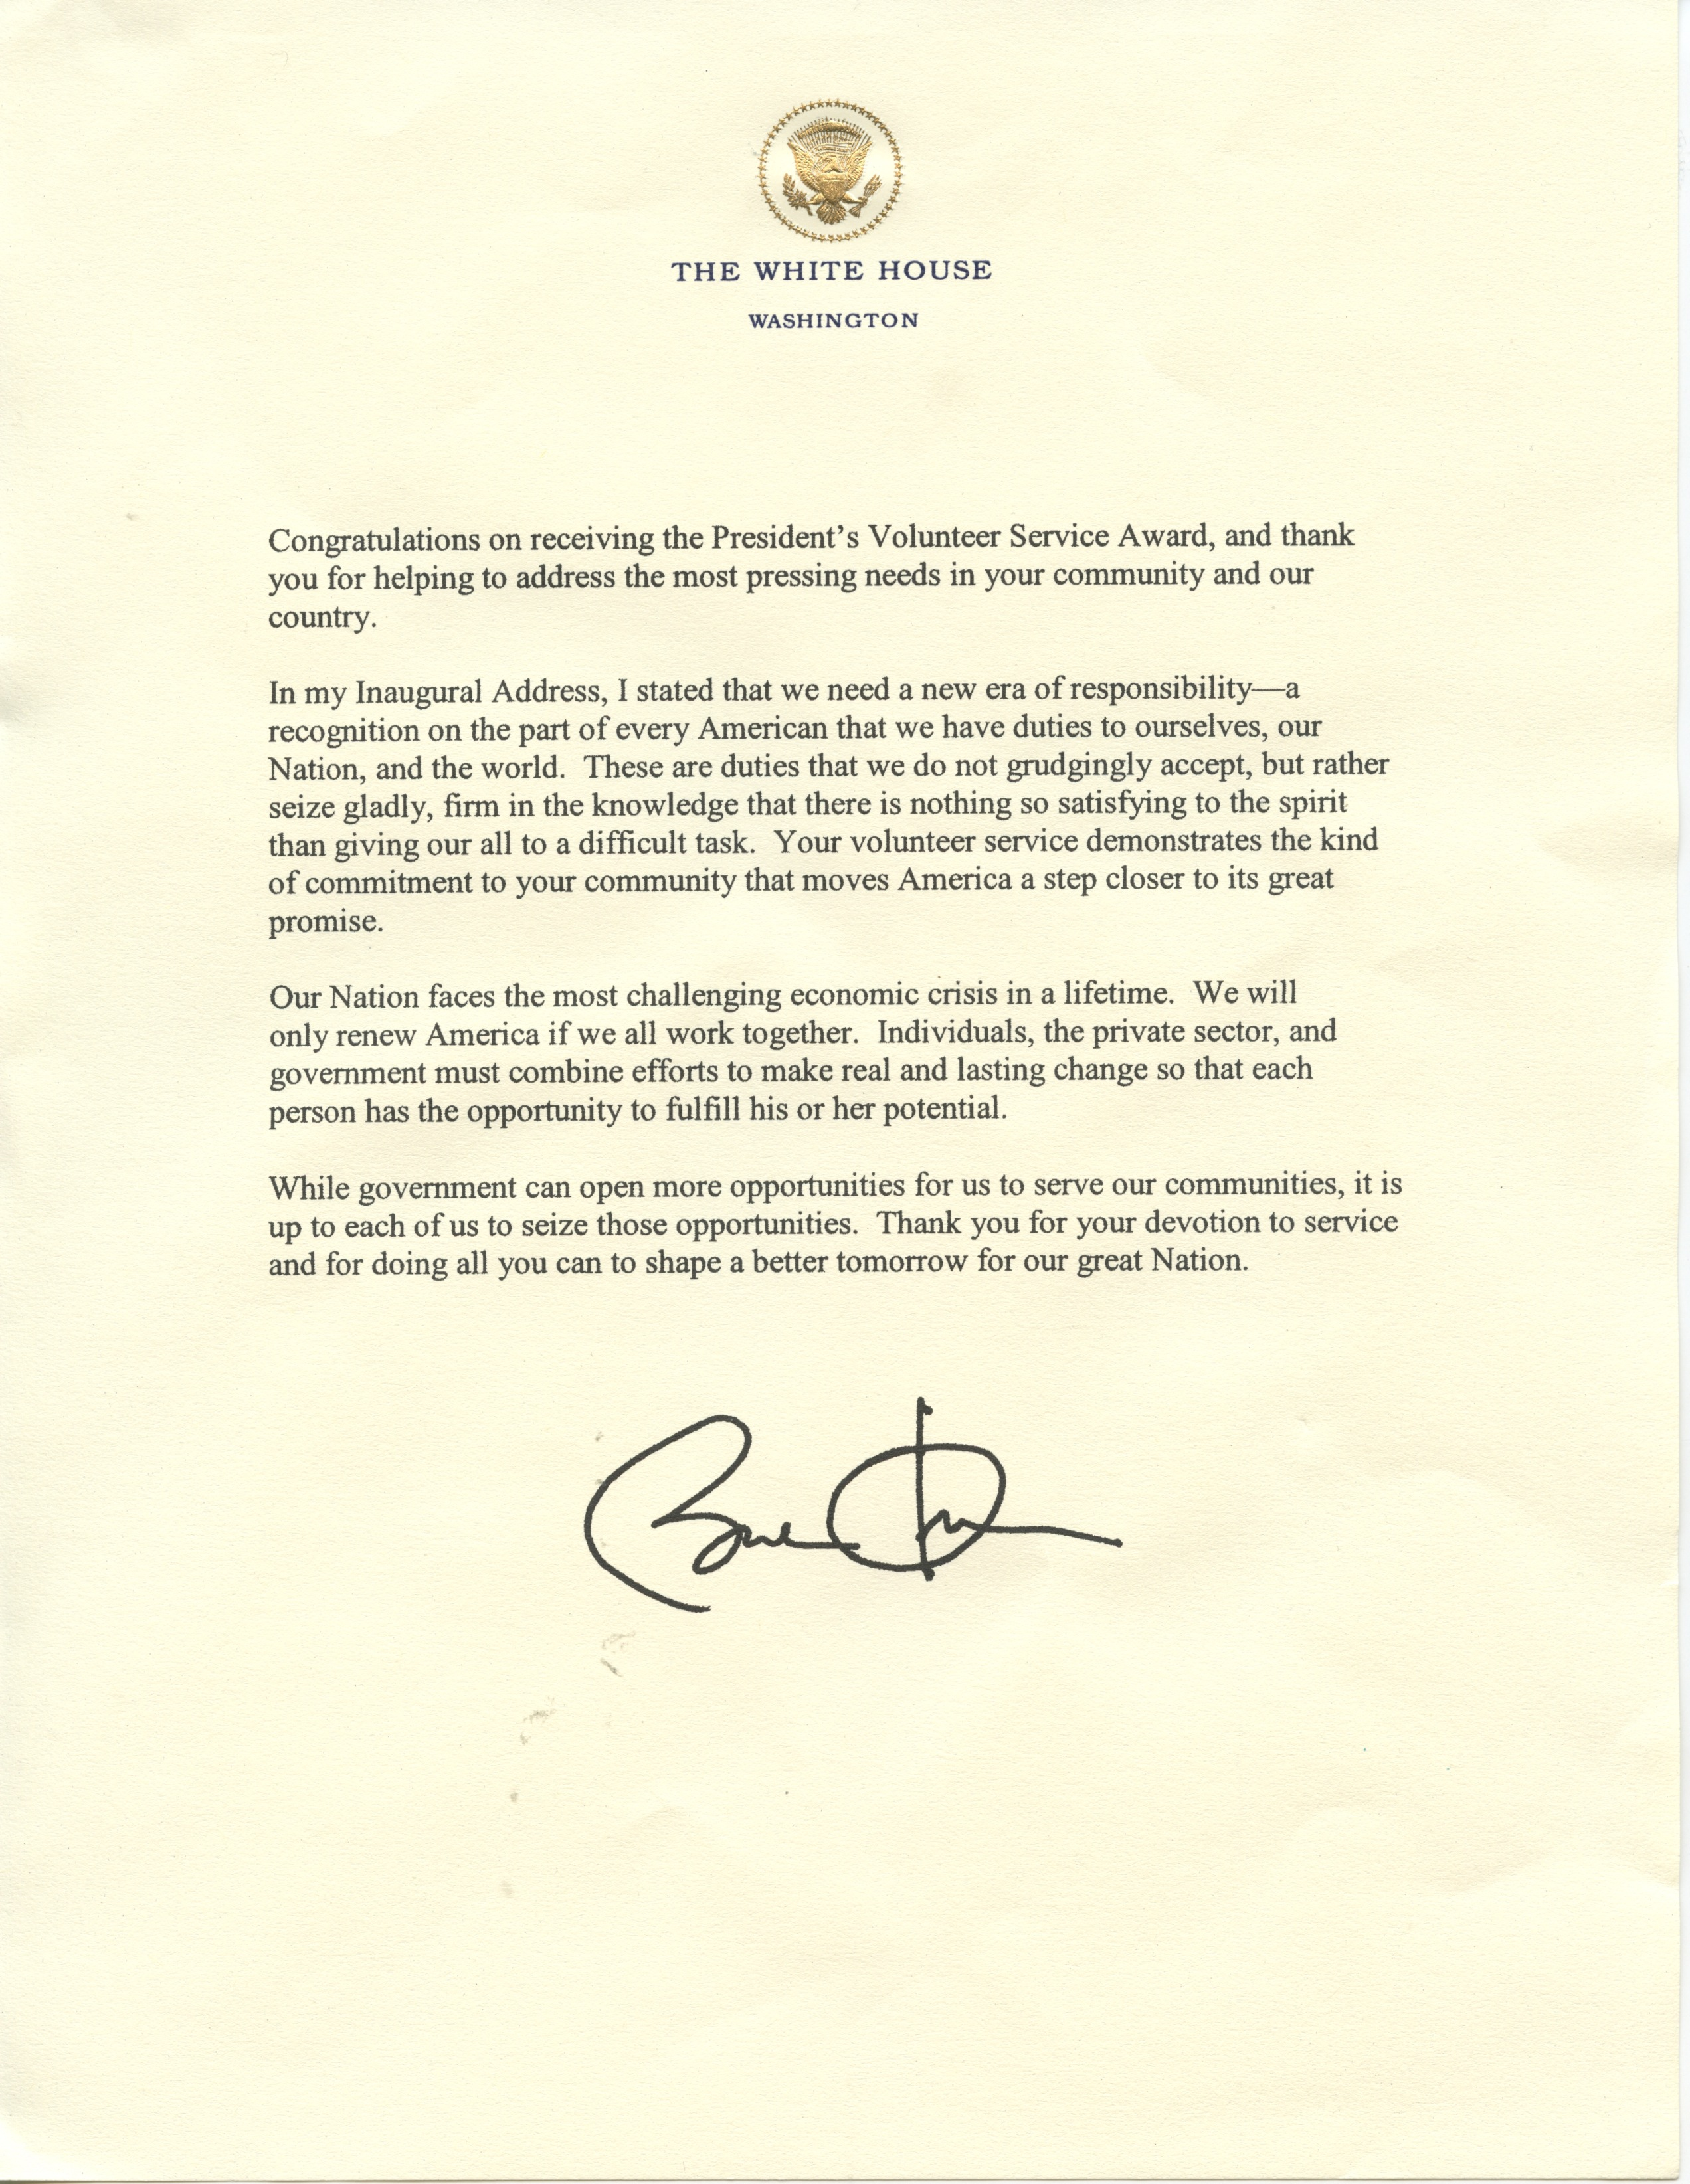 Post-Christmas Resolution, Day 252 – A Letter From The President